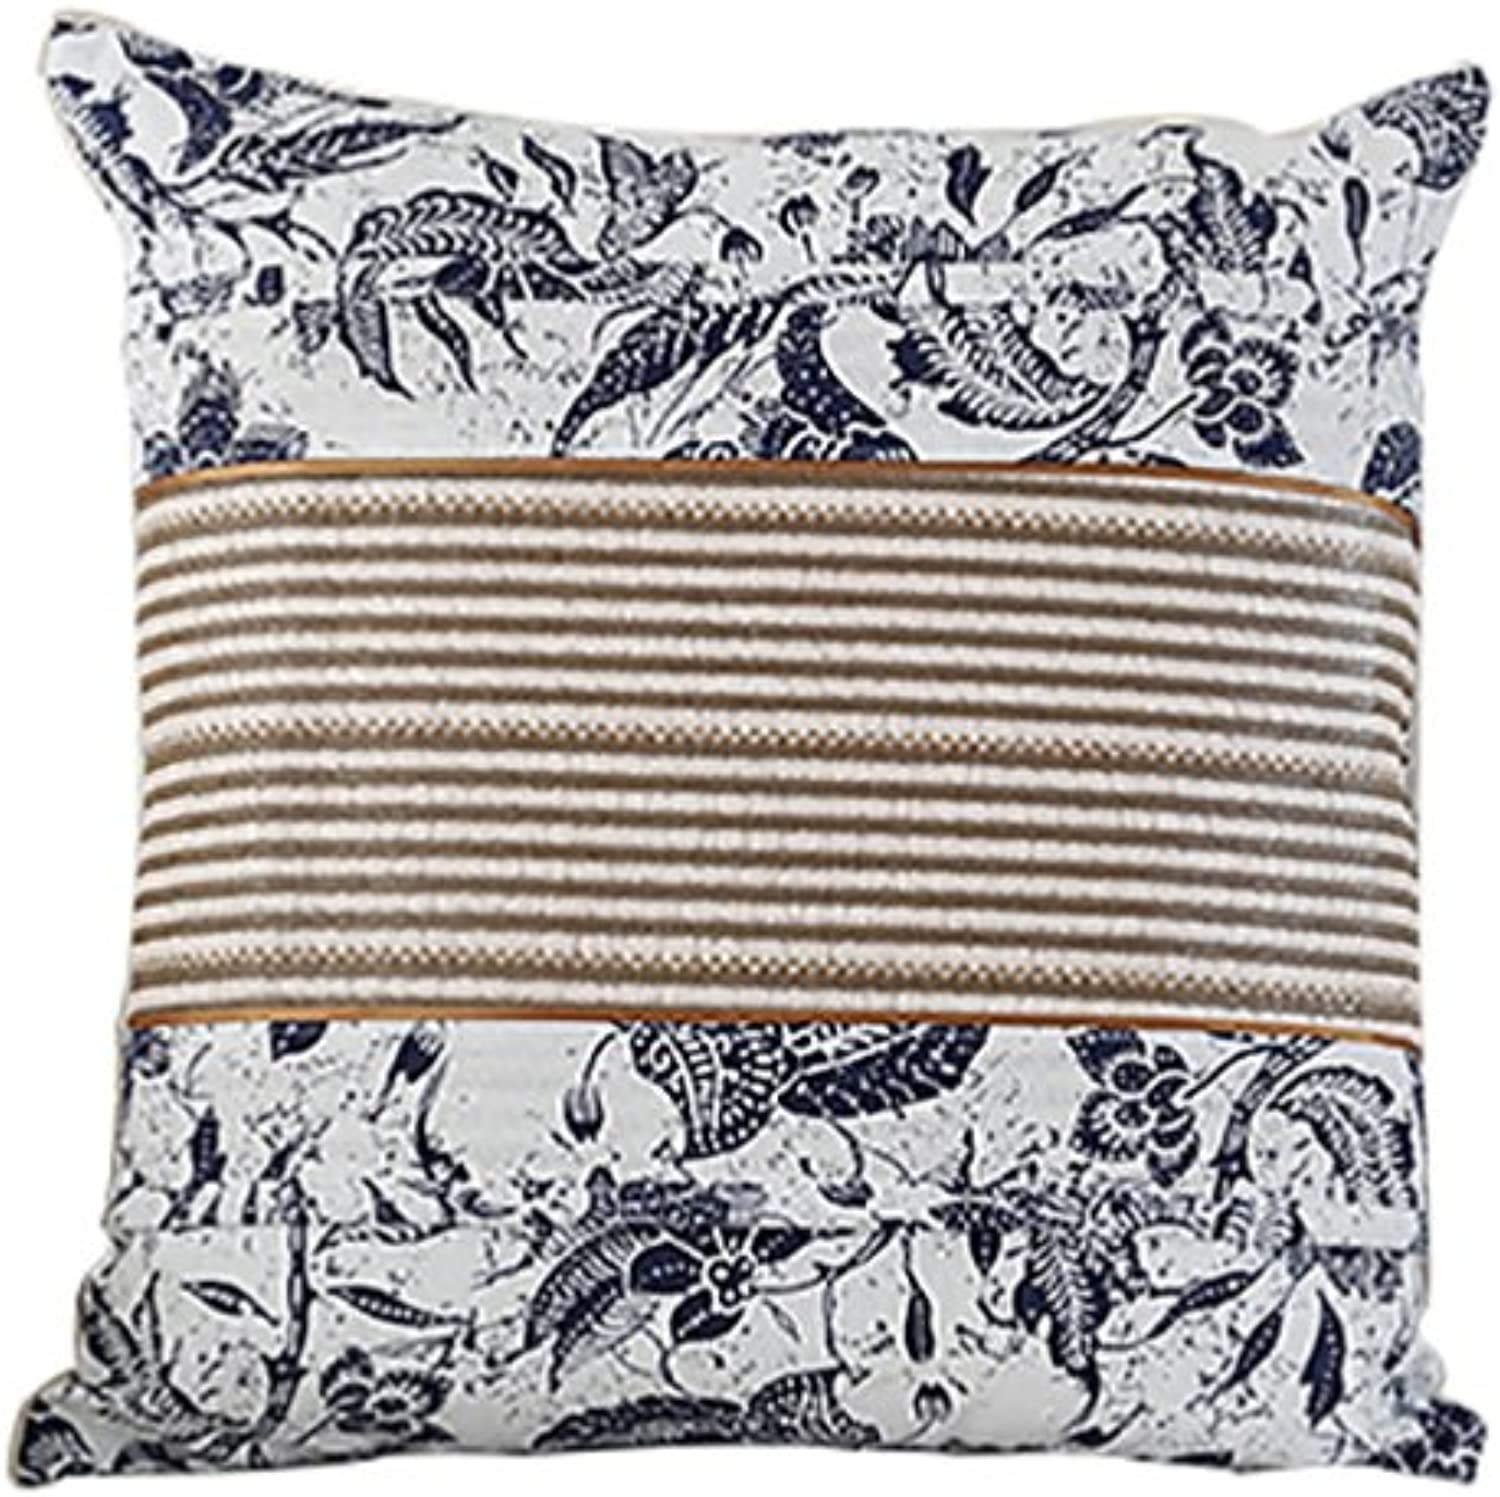 WENJUN Ideal Textiles Set Cushion Covers, Luxury Super Soft Cushions Cover, Luxurious Scatter Throw Cushion Cases (color   bluee ice Silk, Size   40cm40cm)